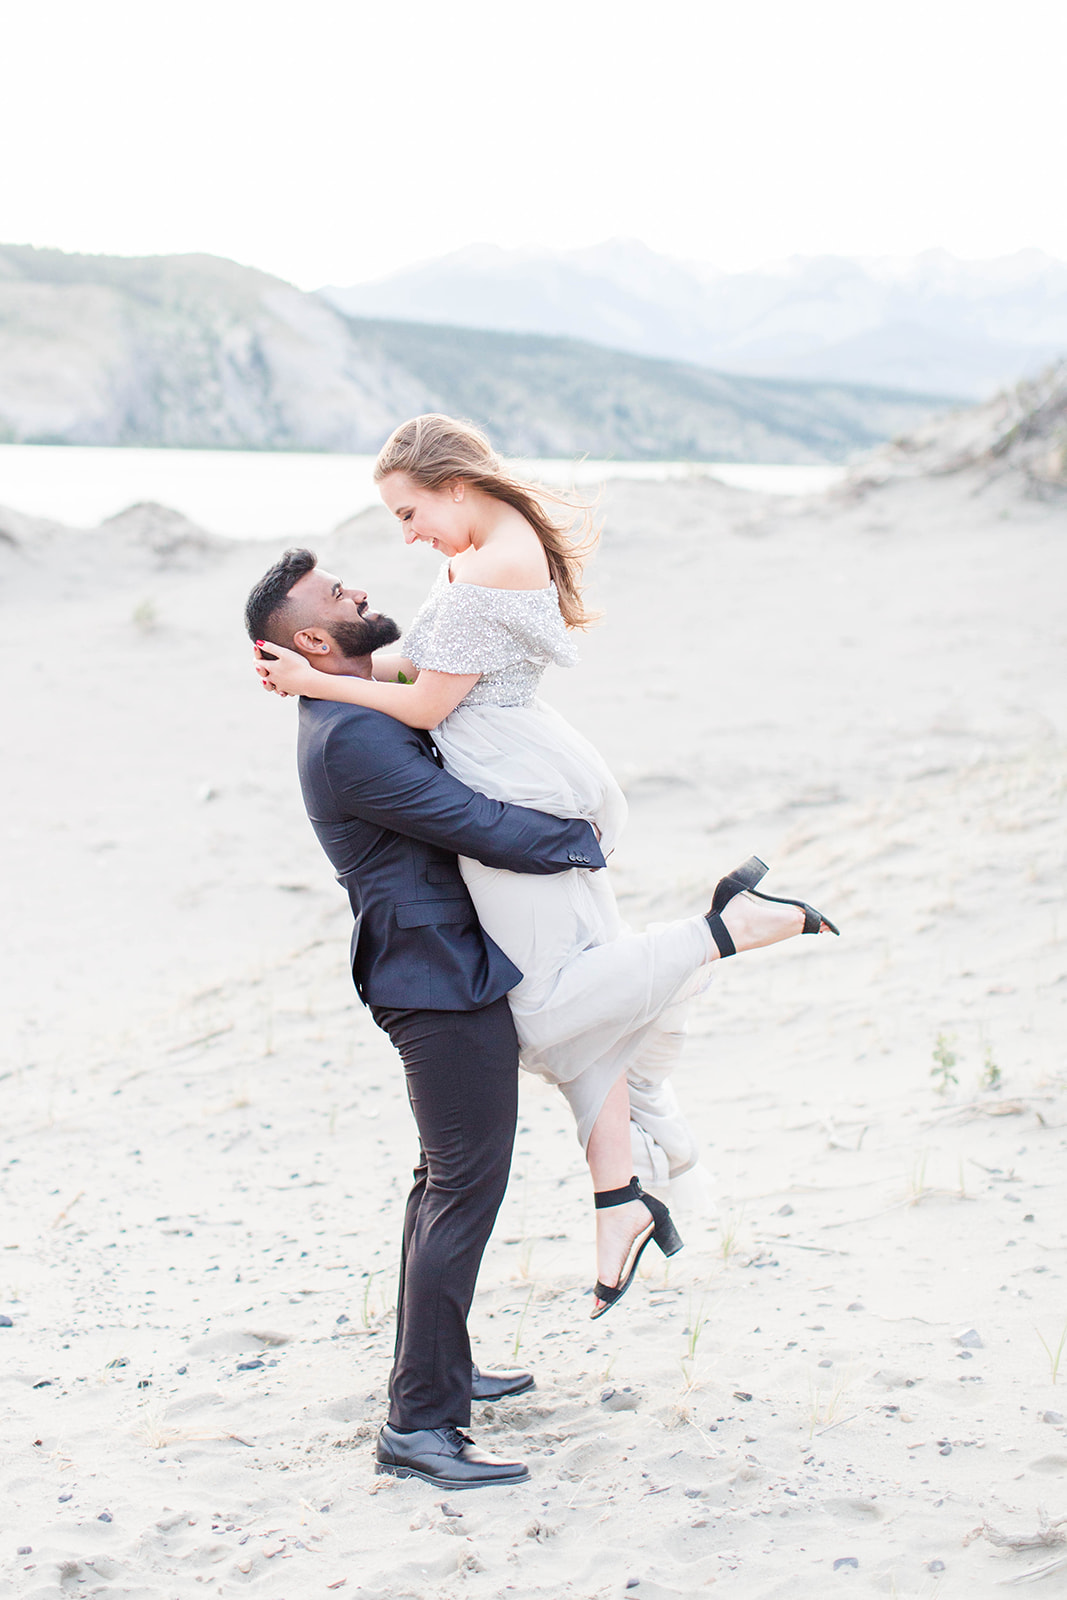 7 Tips for Choosing Your Wedding Photographer // Tips from the Pros - Kayla Lynn Photography on the Bronte Bride Blog